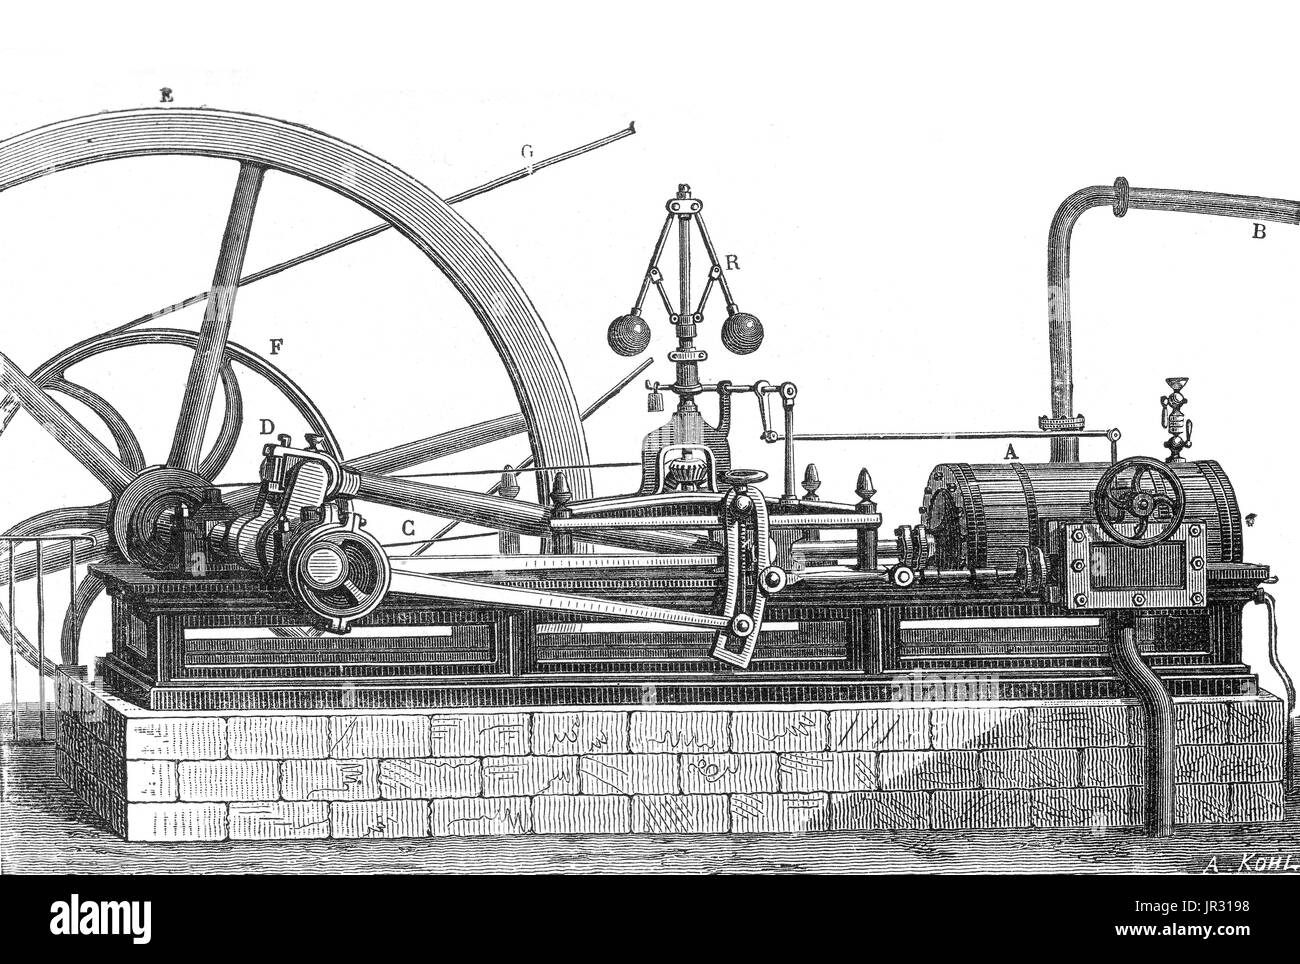 Steam engine with no condenser, horizontal cylinder. The first recorded rudimentary steam engine was the aeolipile described by Heron of Alexandria in the 1st century AD. Starting in the 12th century, a number of steam-powered devices were experimented with or proposed. In 1712 Thomas Newcomen's atmospheric engine became the first commercially successful engine using the principle of the piston and cylinder, which was the fundamental type steam engine used until the early 20th century. During the industrial revolution, steam engines started to replace water and wind power, and eventually becam - Stock Image